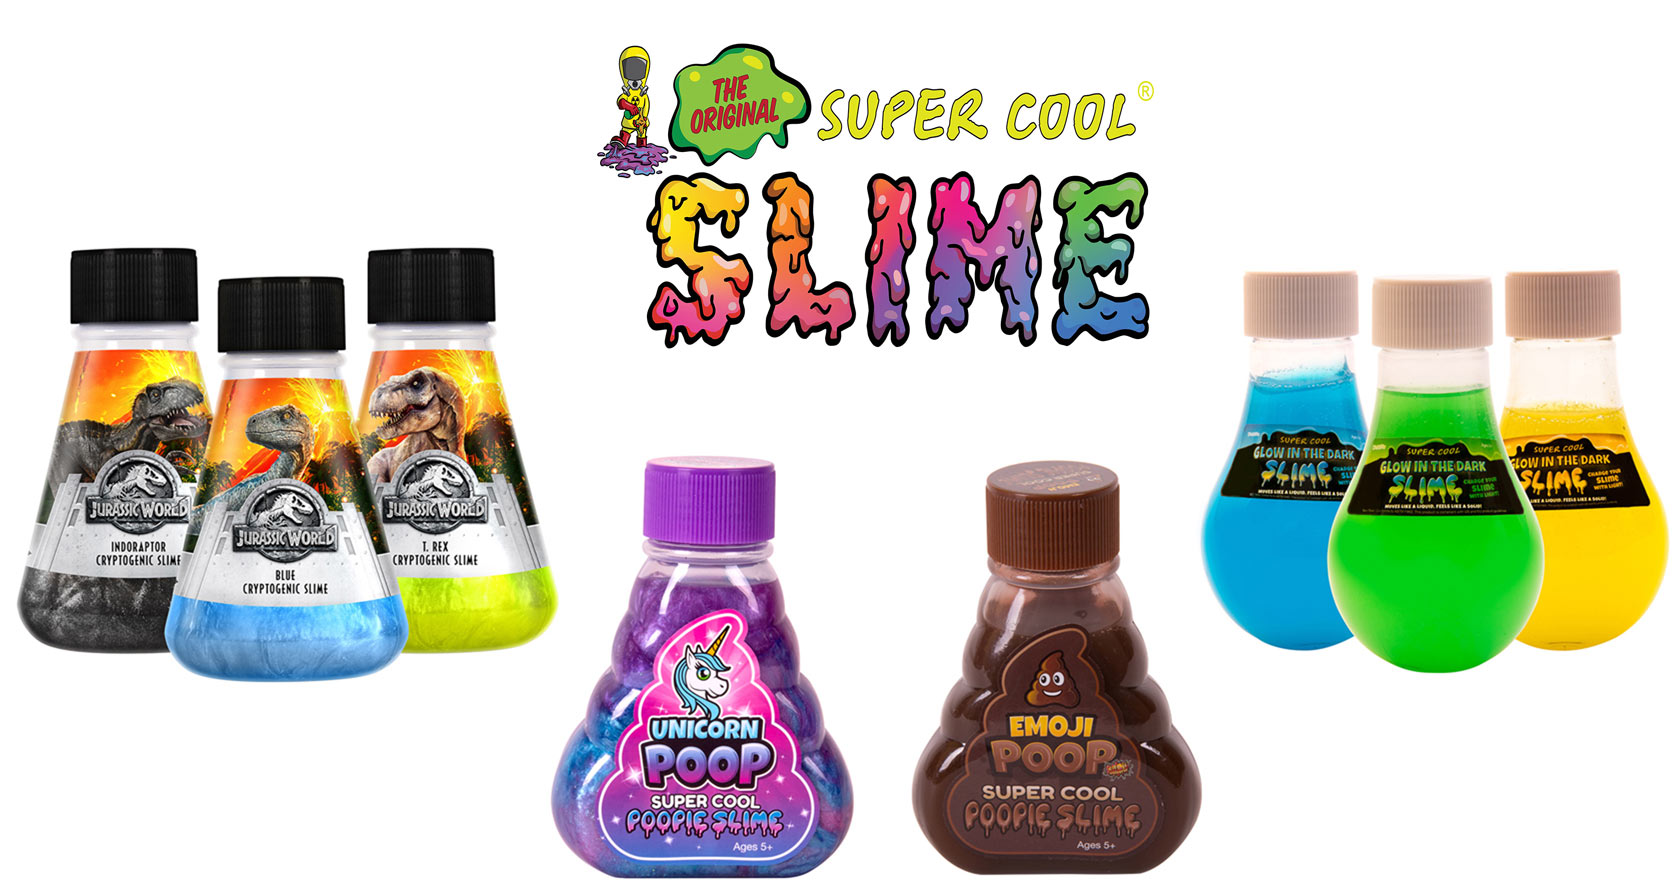 Kangaroo Manufacturing Expands Slime Line With Kid-Friendly Favorites At Just $4.95: Unicorn, Jurassic World, Glow In The Dark And Emoji Poop